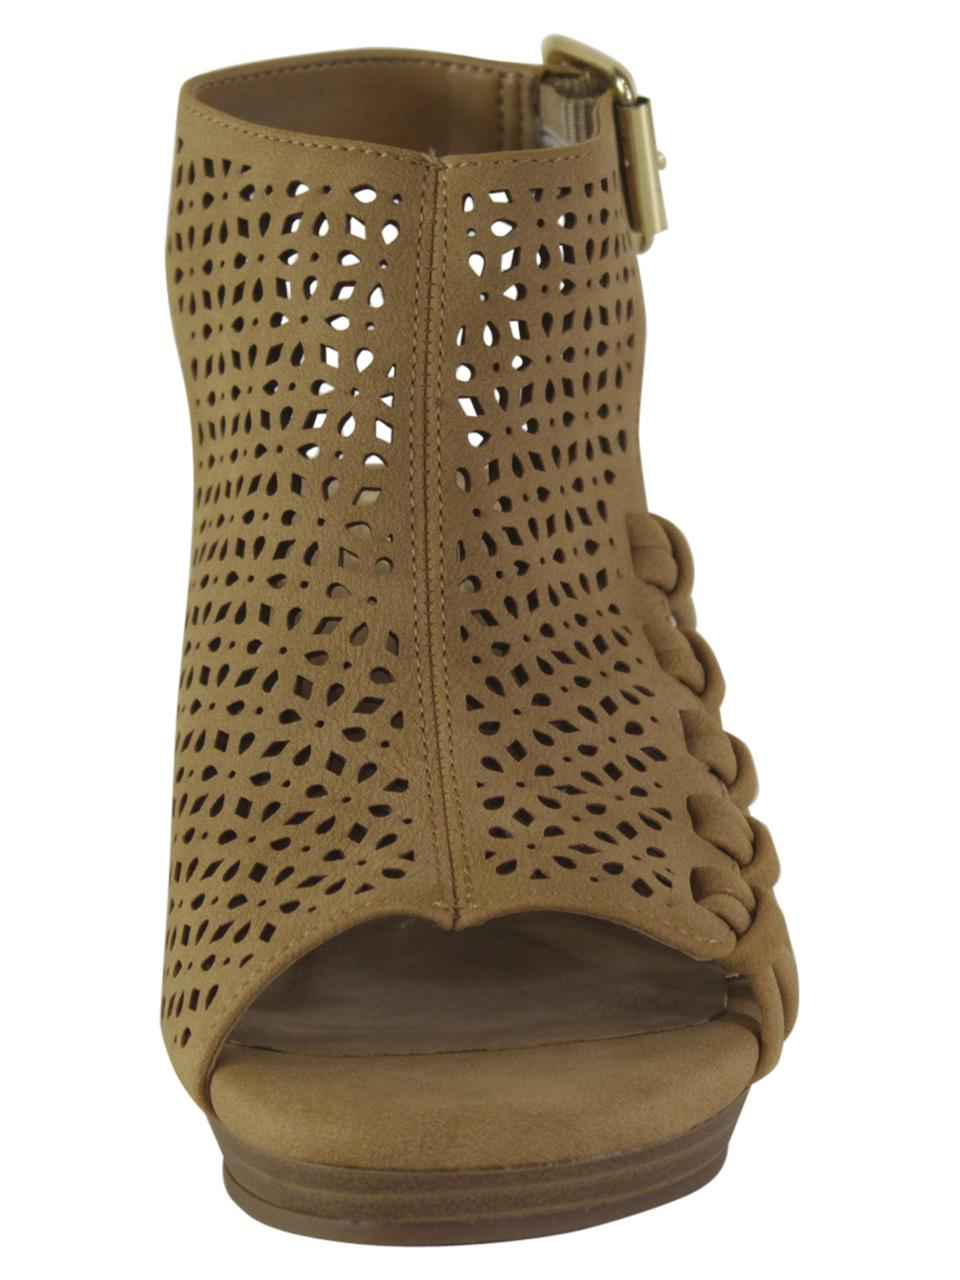 3c7d054cb3 Vince Camuto Little/Big Girl's Obal Wedge Sandals Shoes by Vince Camuto